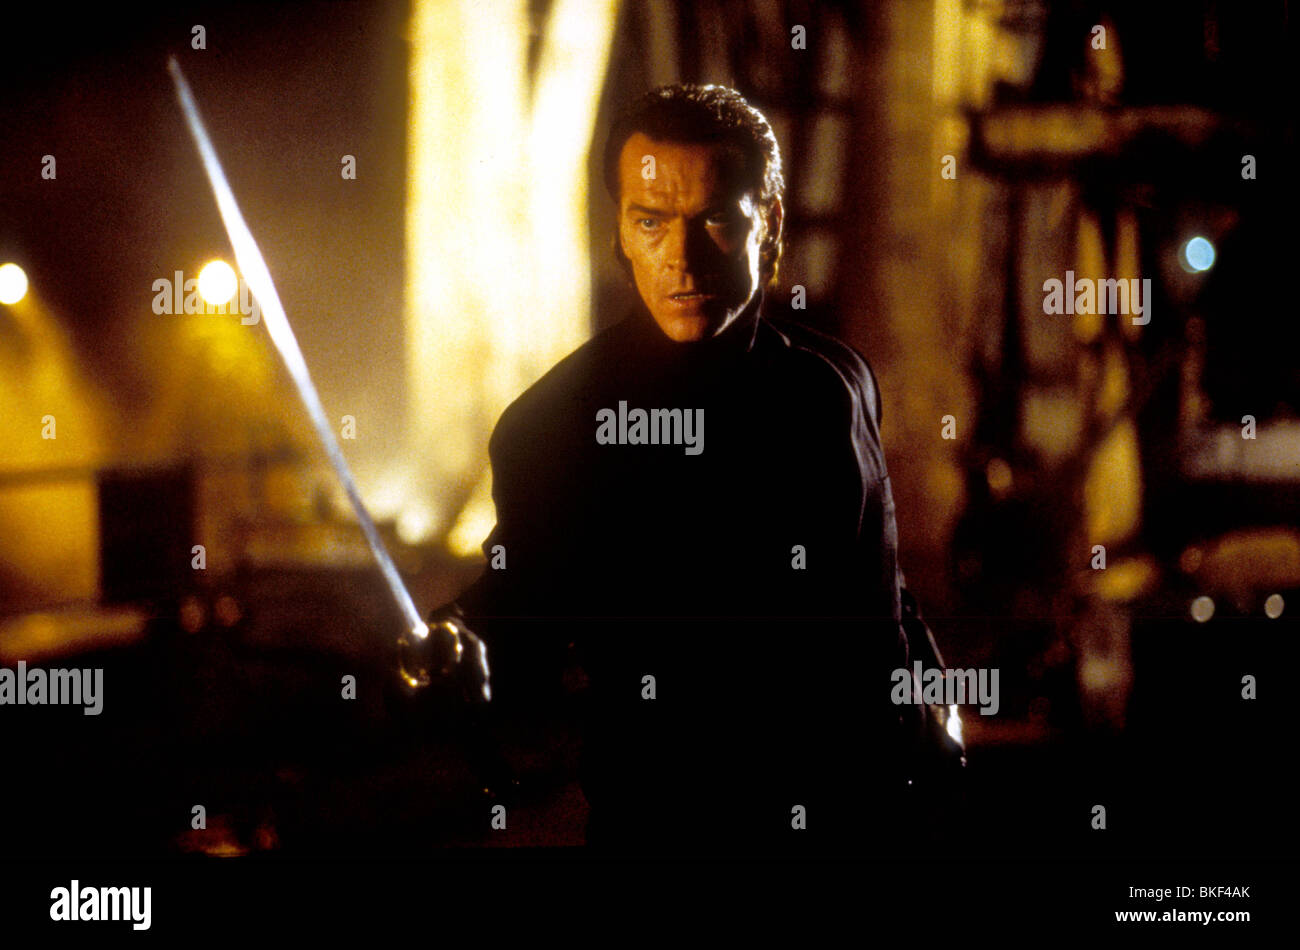 LARA CROFT: TOMB RAIDER (2001) IAIN GLEN TBRR 083 - Stock Image